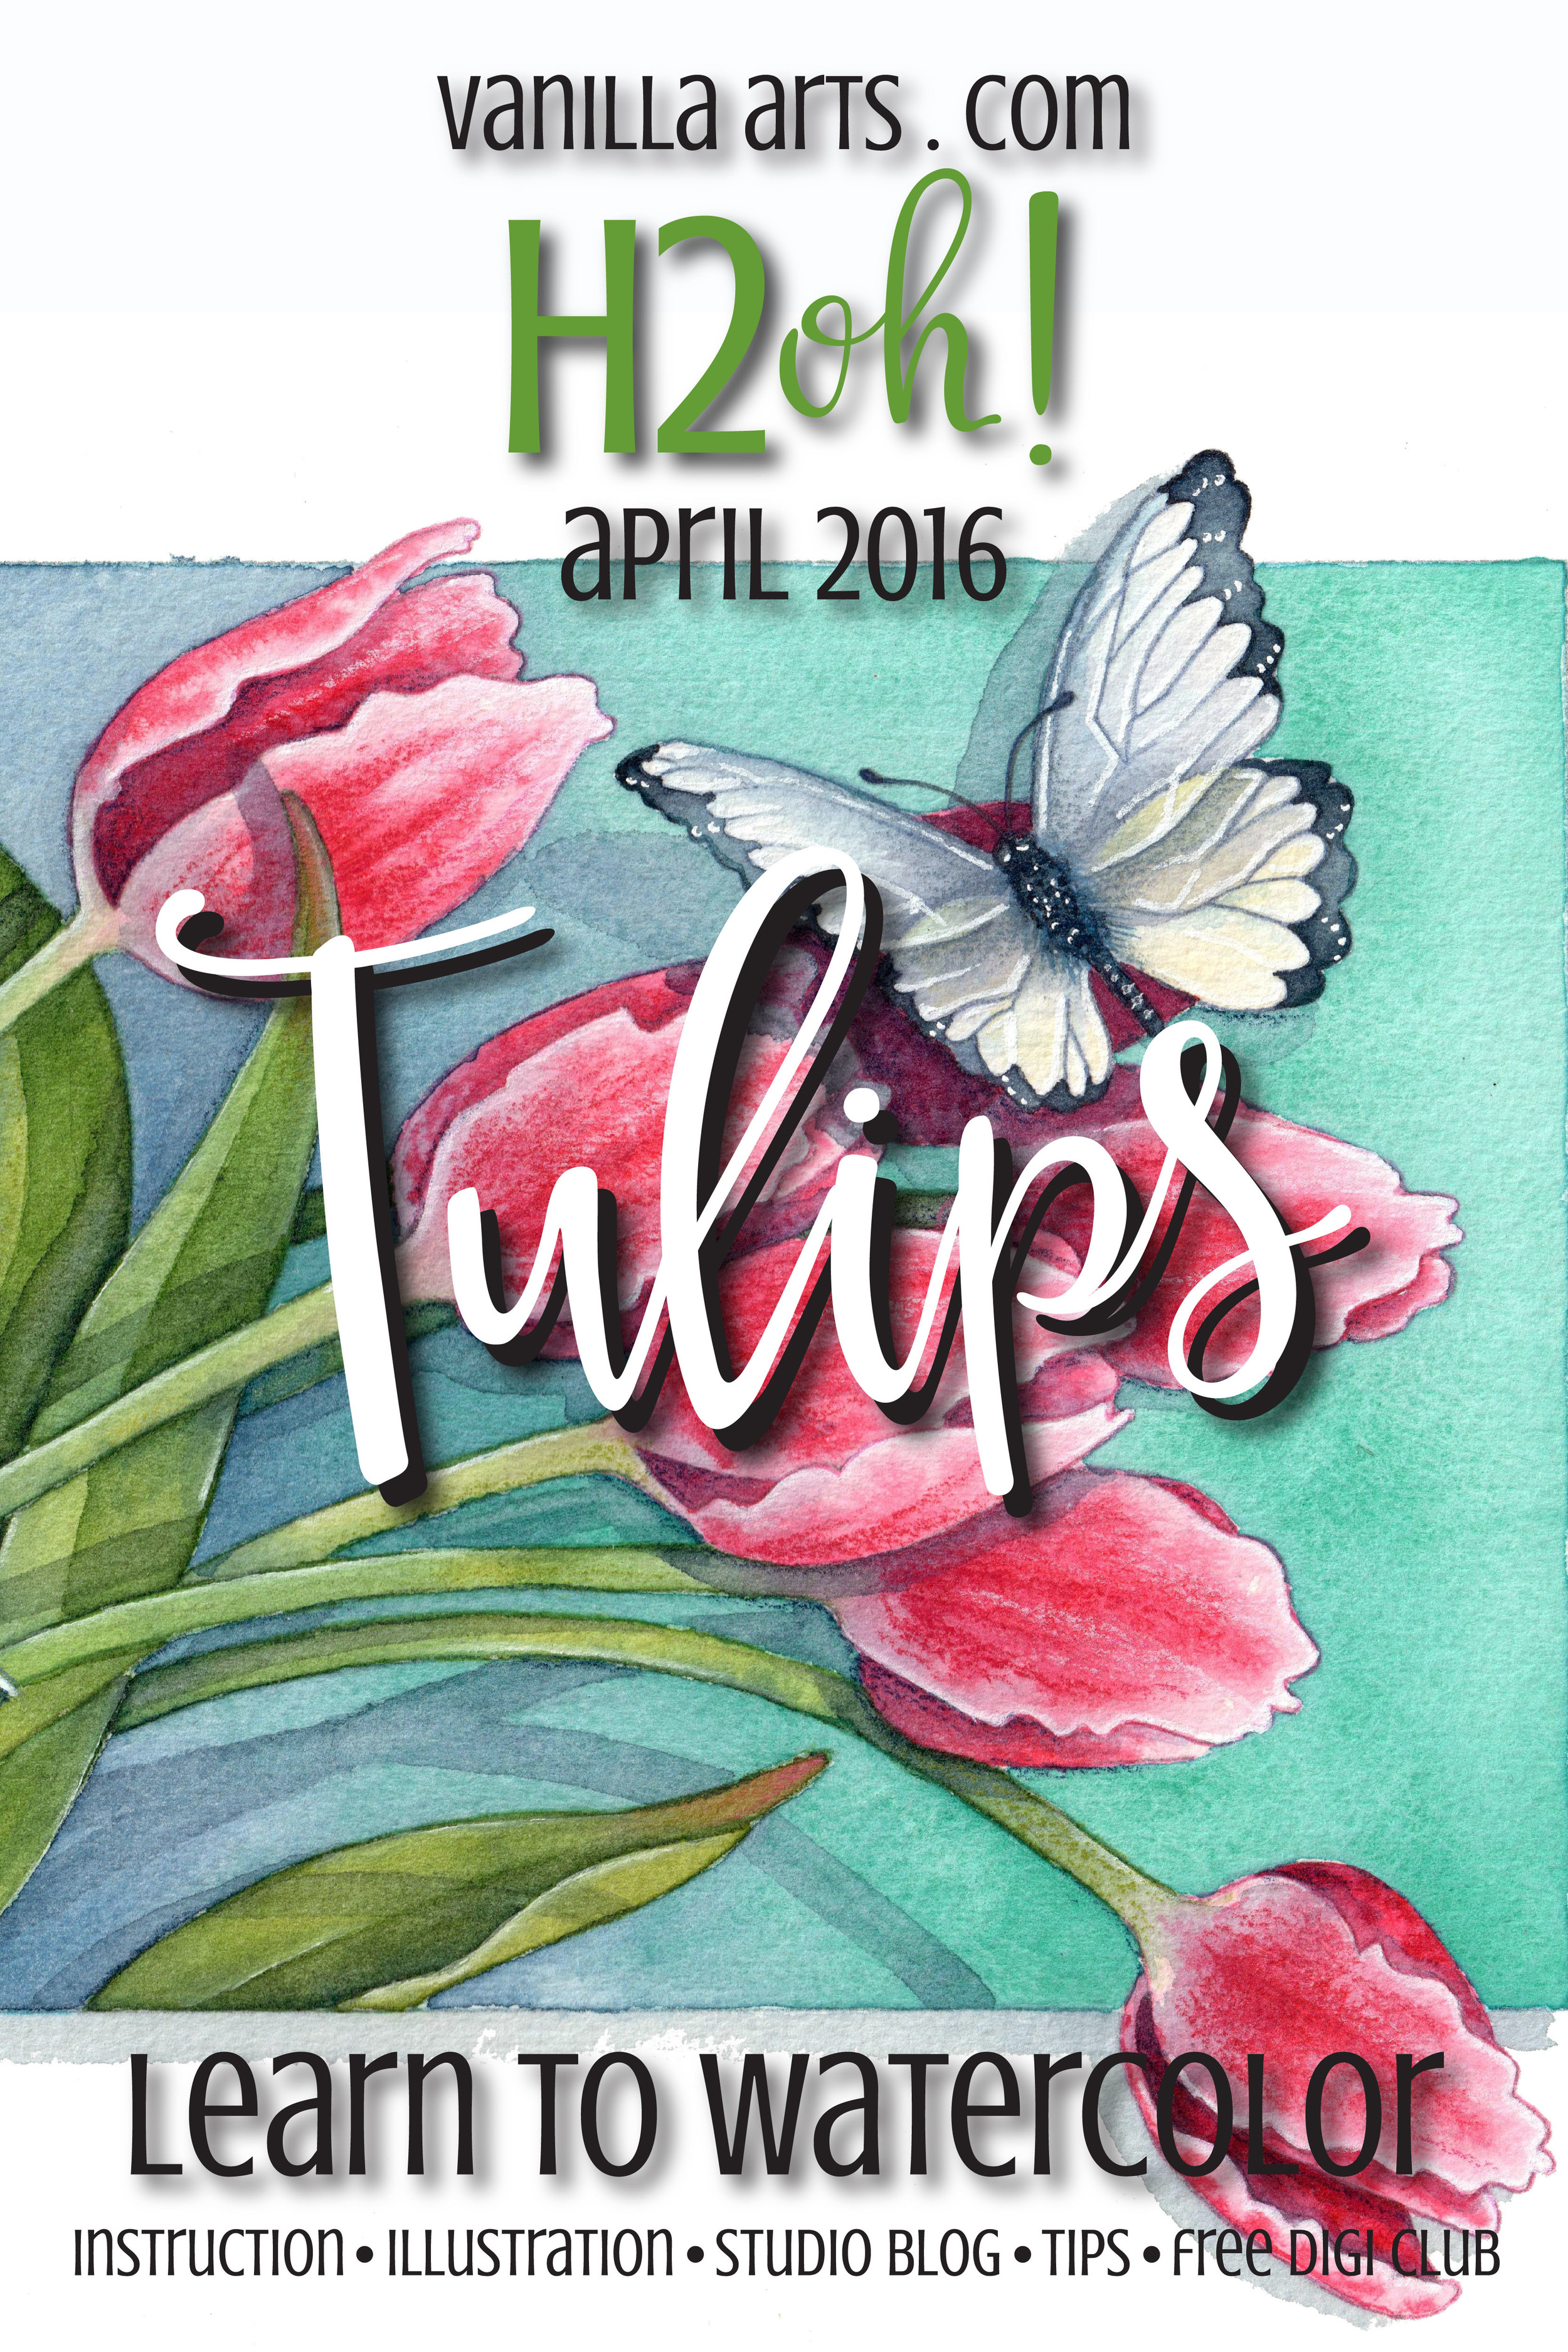 Learn to Watercolor, botanical lesson on Tulips | VanillaArts.com